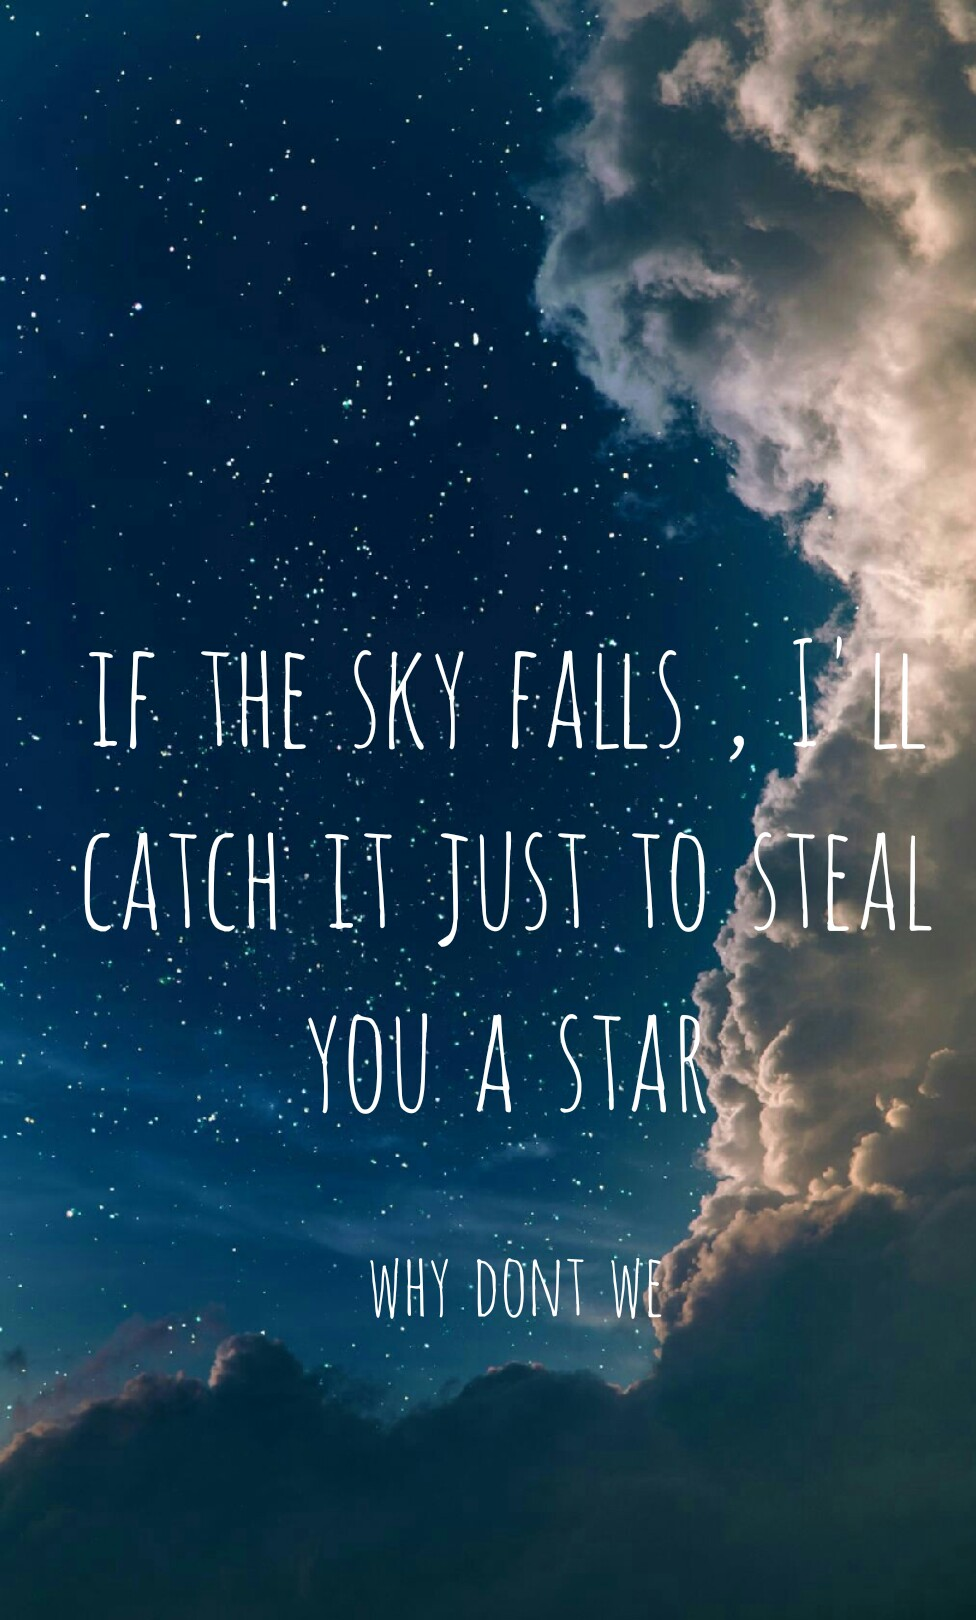 Why dont we Wallpaper Samsung wallpaper Lyrics from why 976x1620